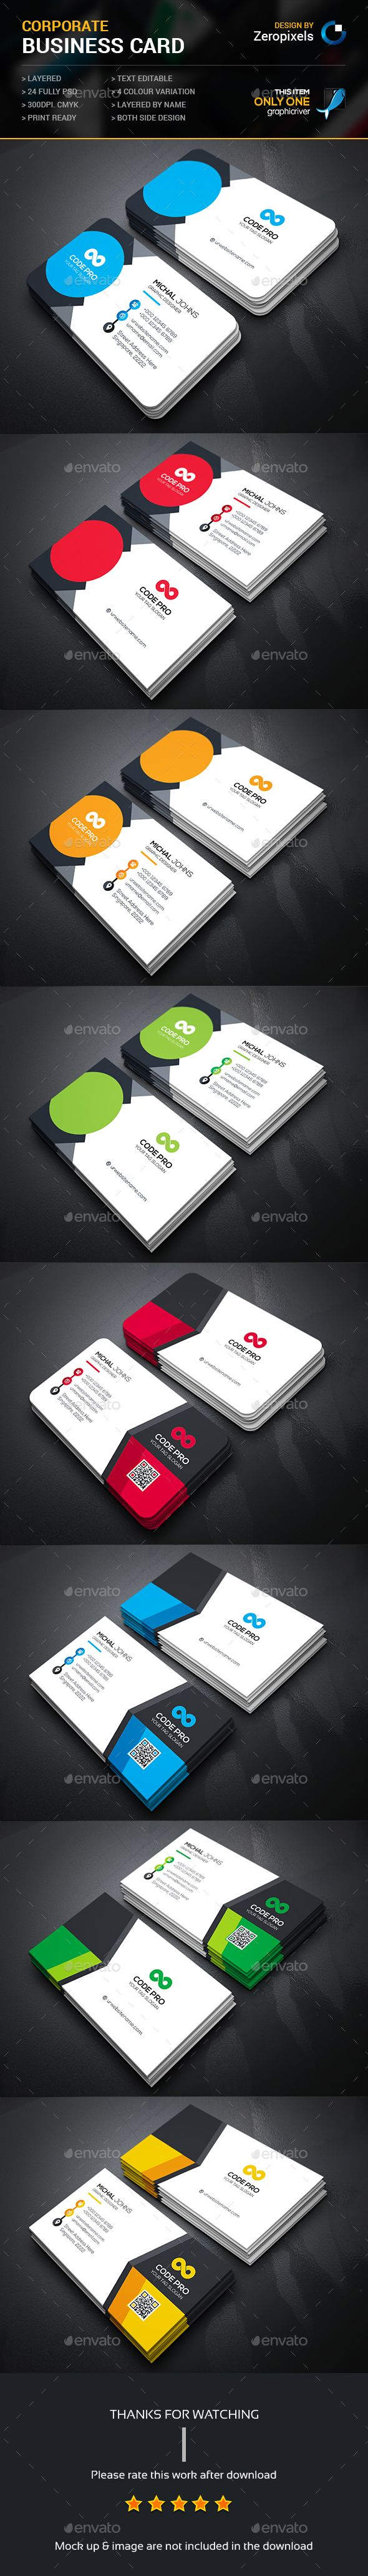 Business Card Bundle Templates PSD. Download here: http://graphicriver.net/item/business-card-bundle/16093633?ref=ksioks